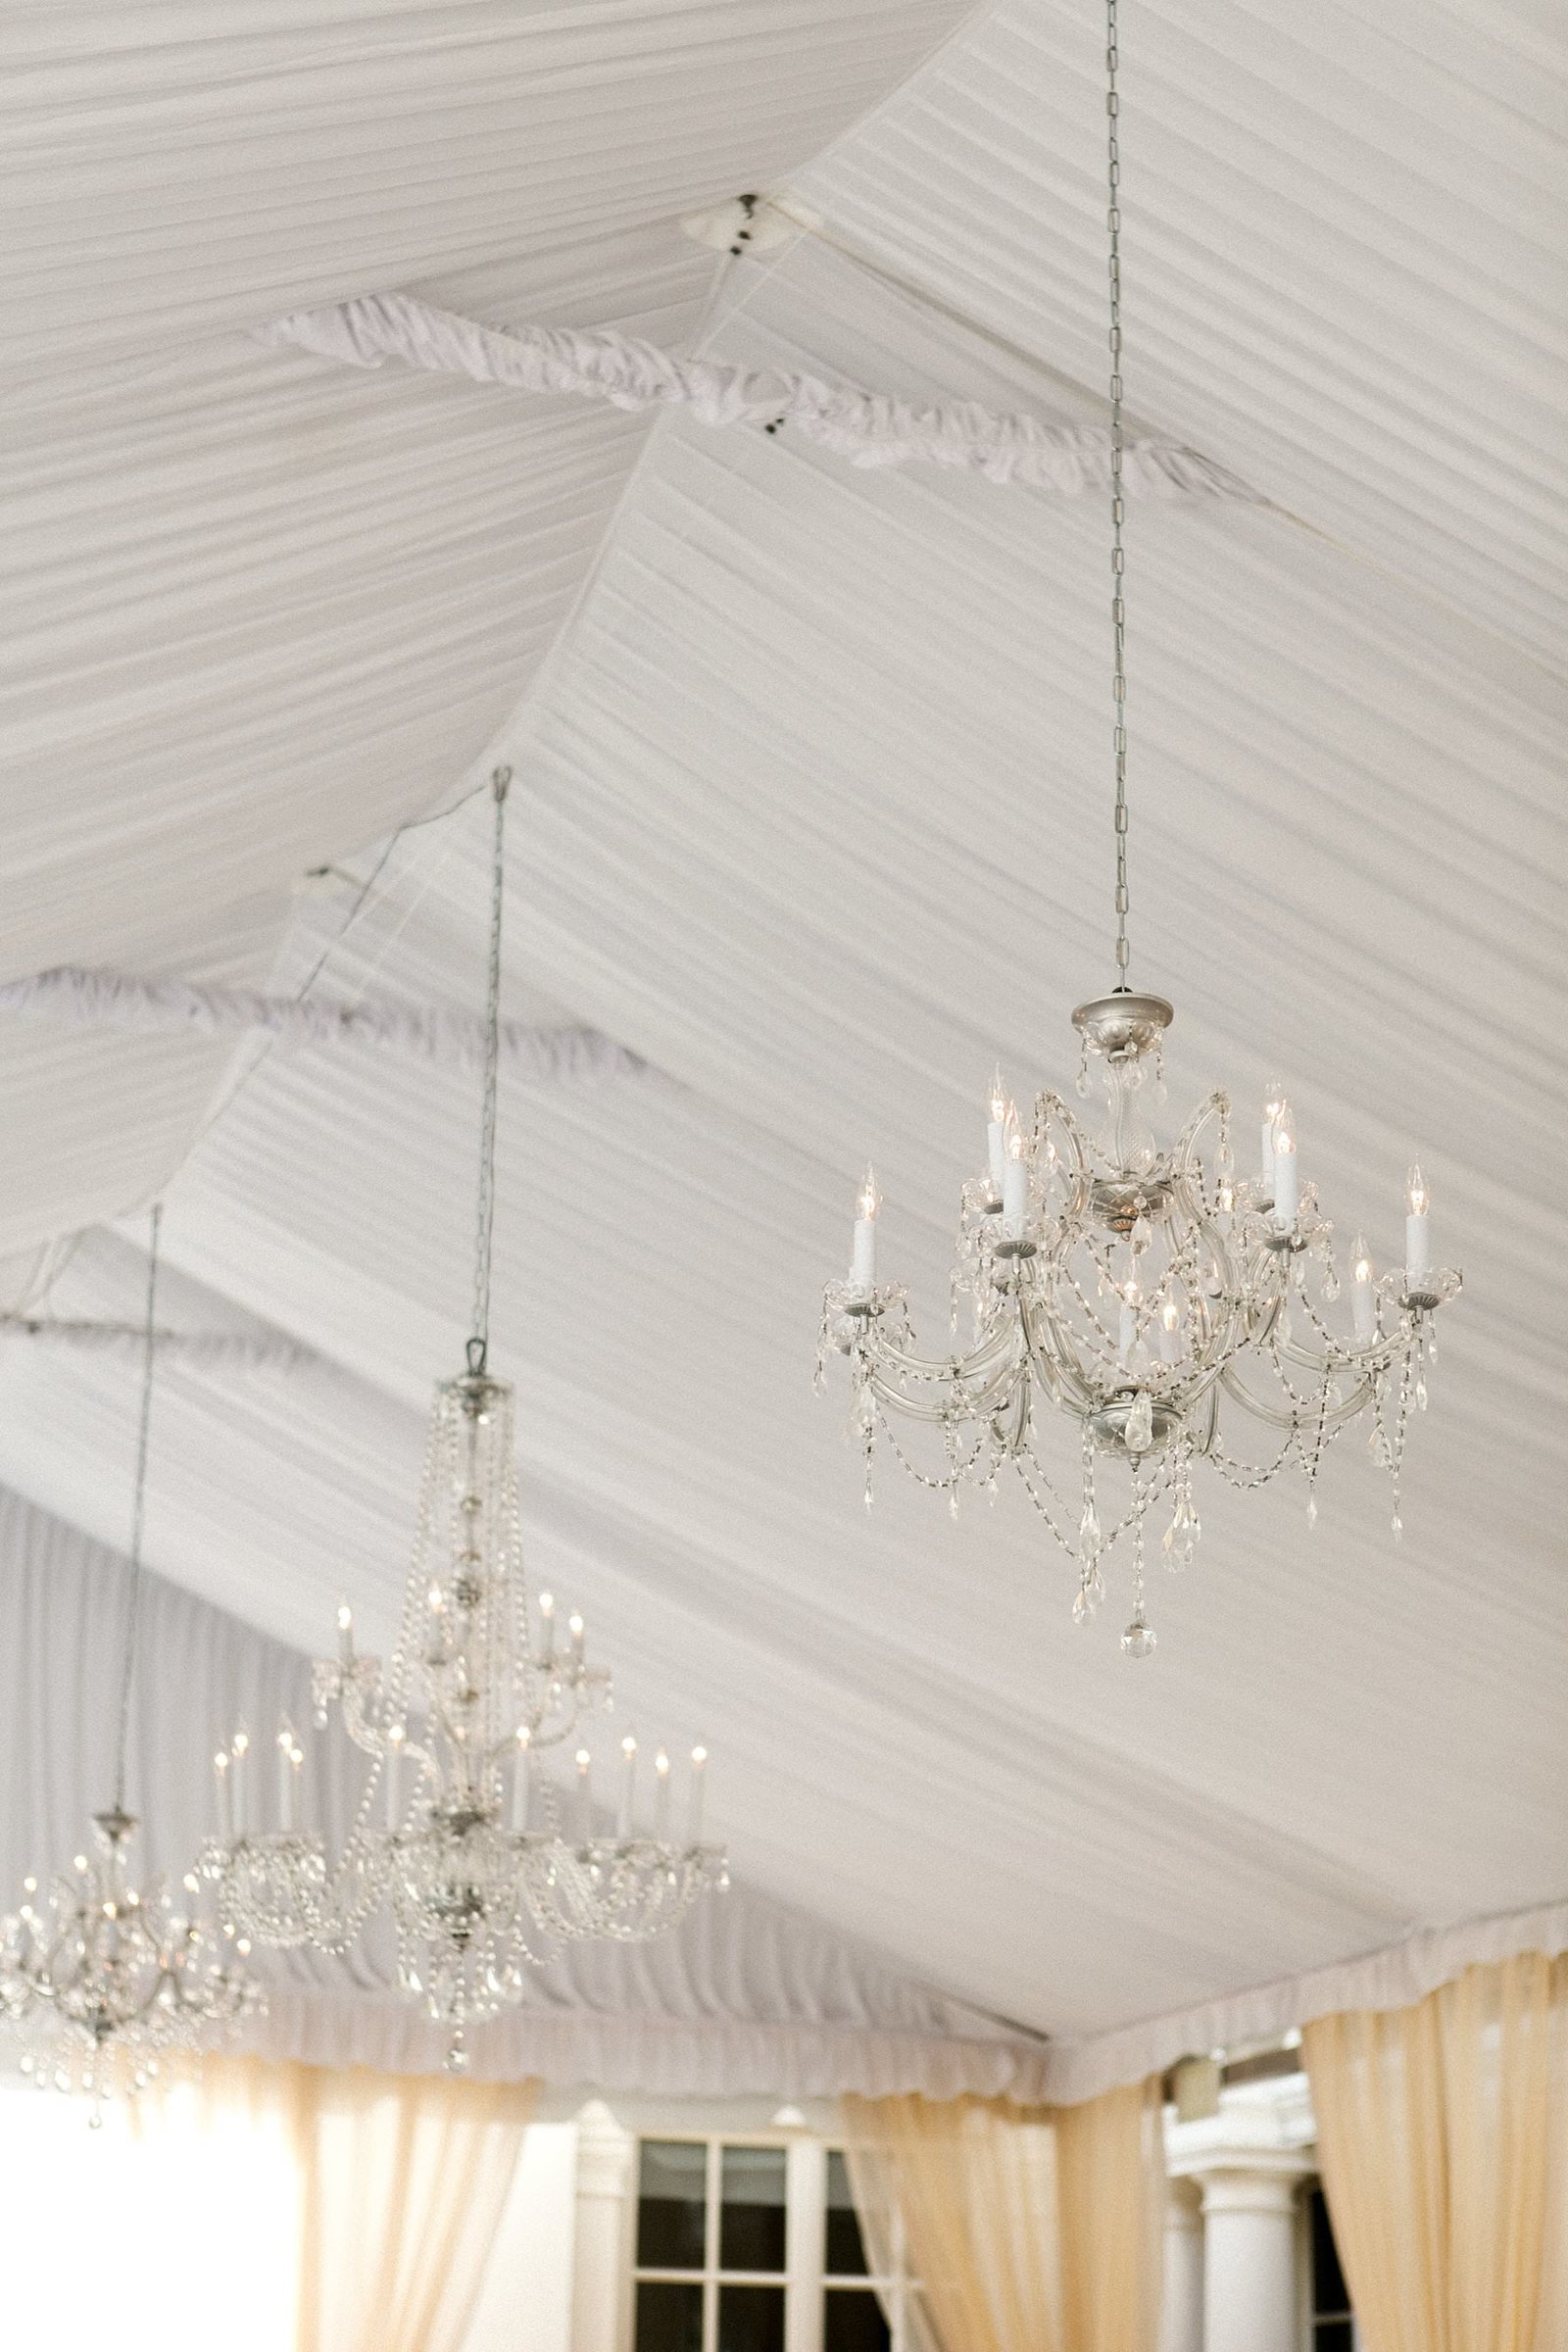 tented-wadsworth-mansion-wedding-middletown-ct_0060